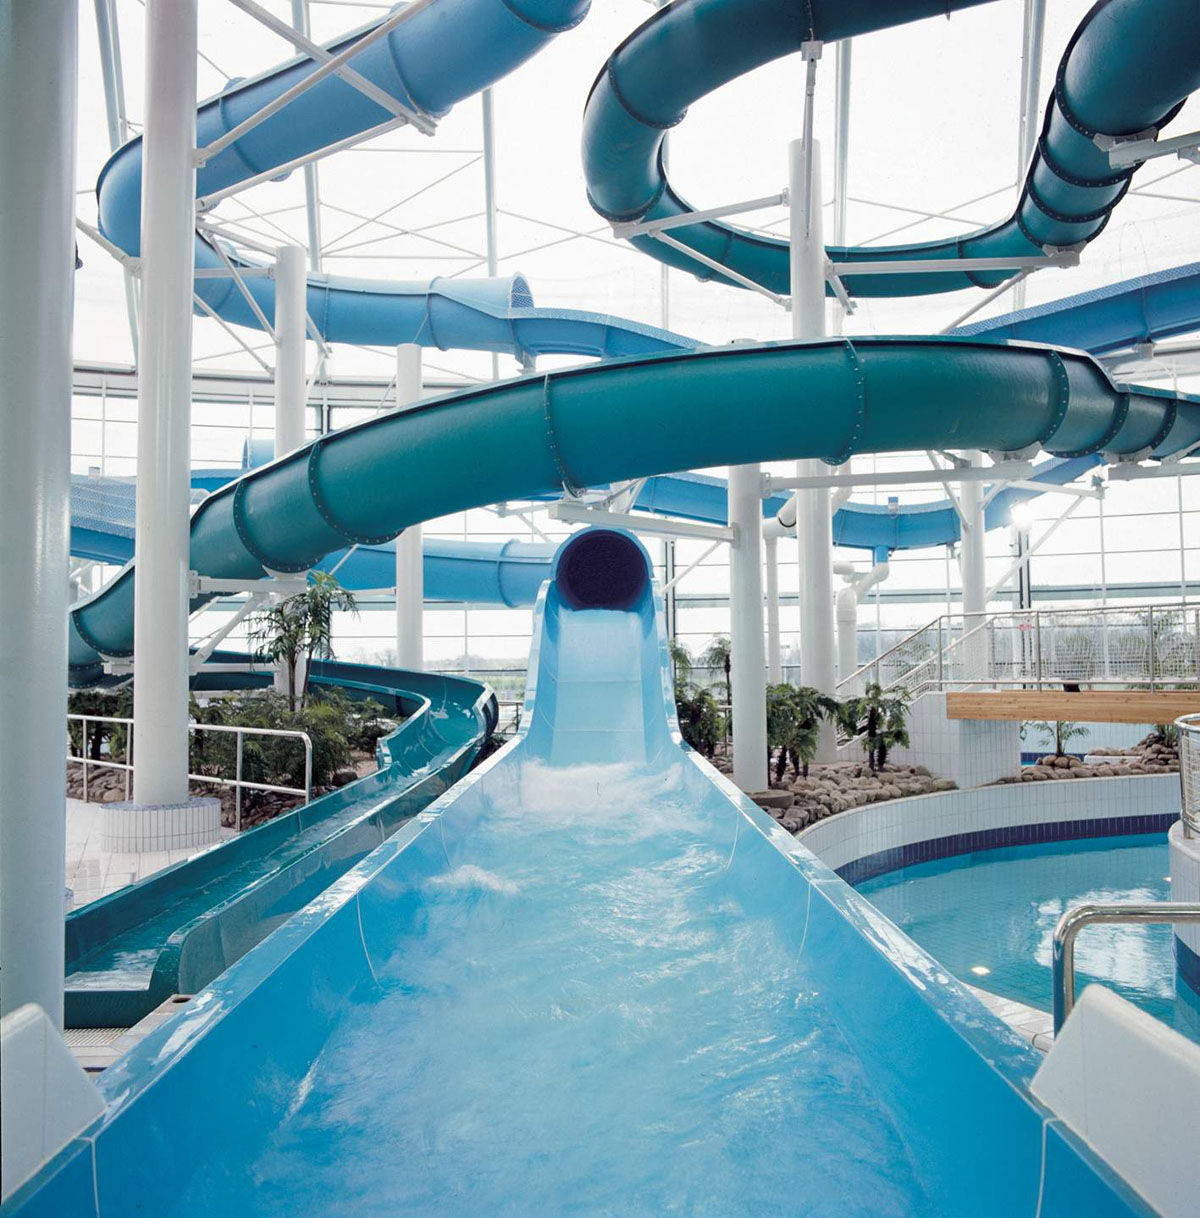 View of the Masterblaster Water Roller Coaster National Aquatic Centre